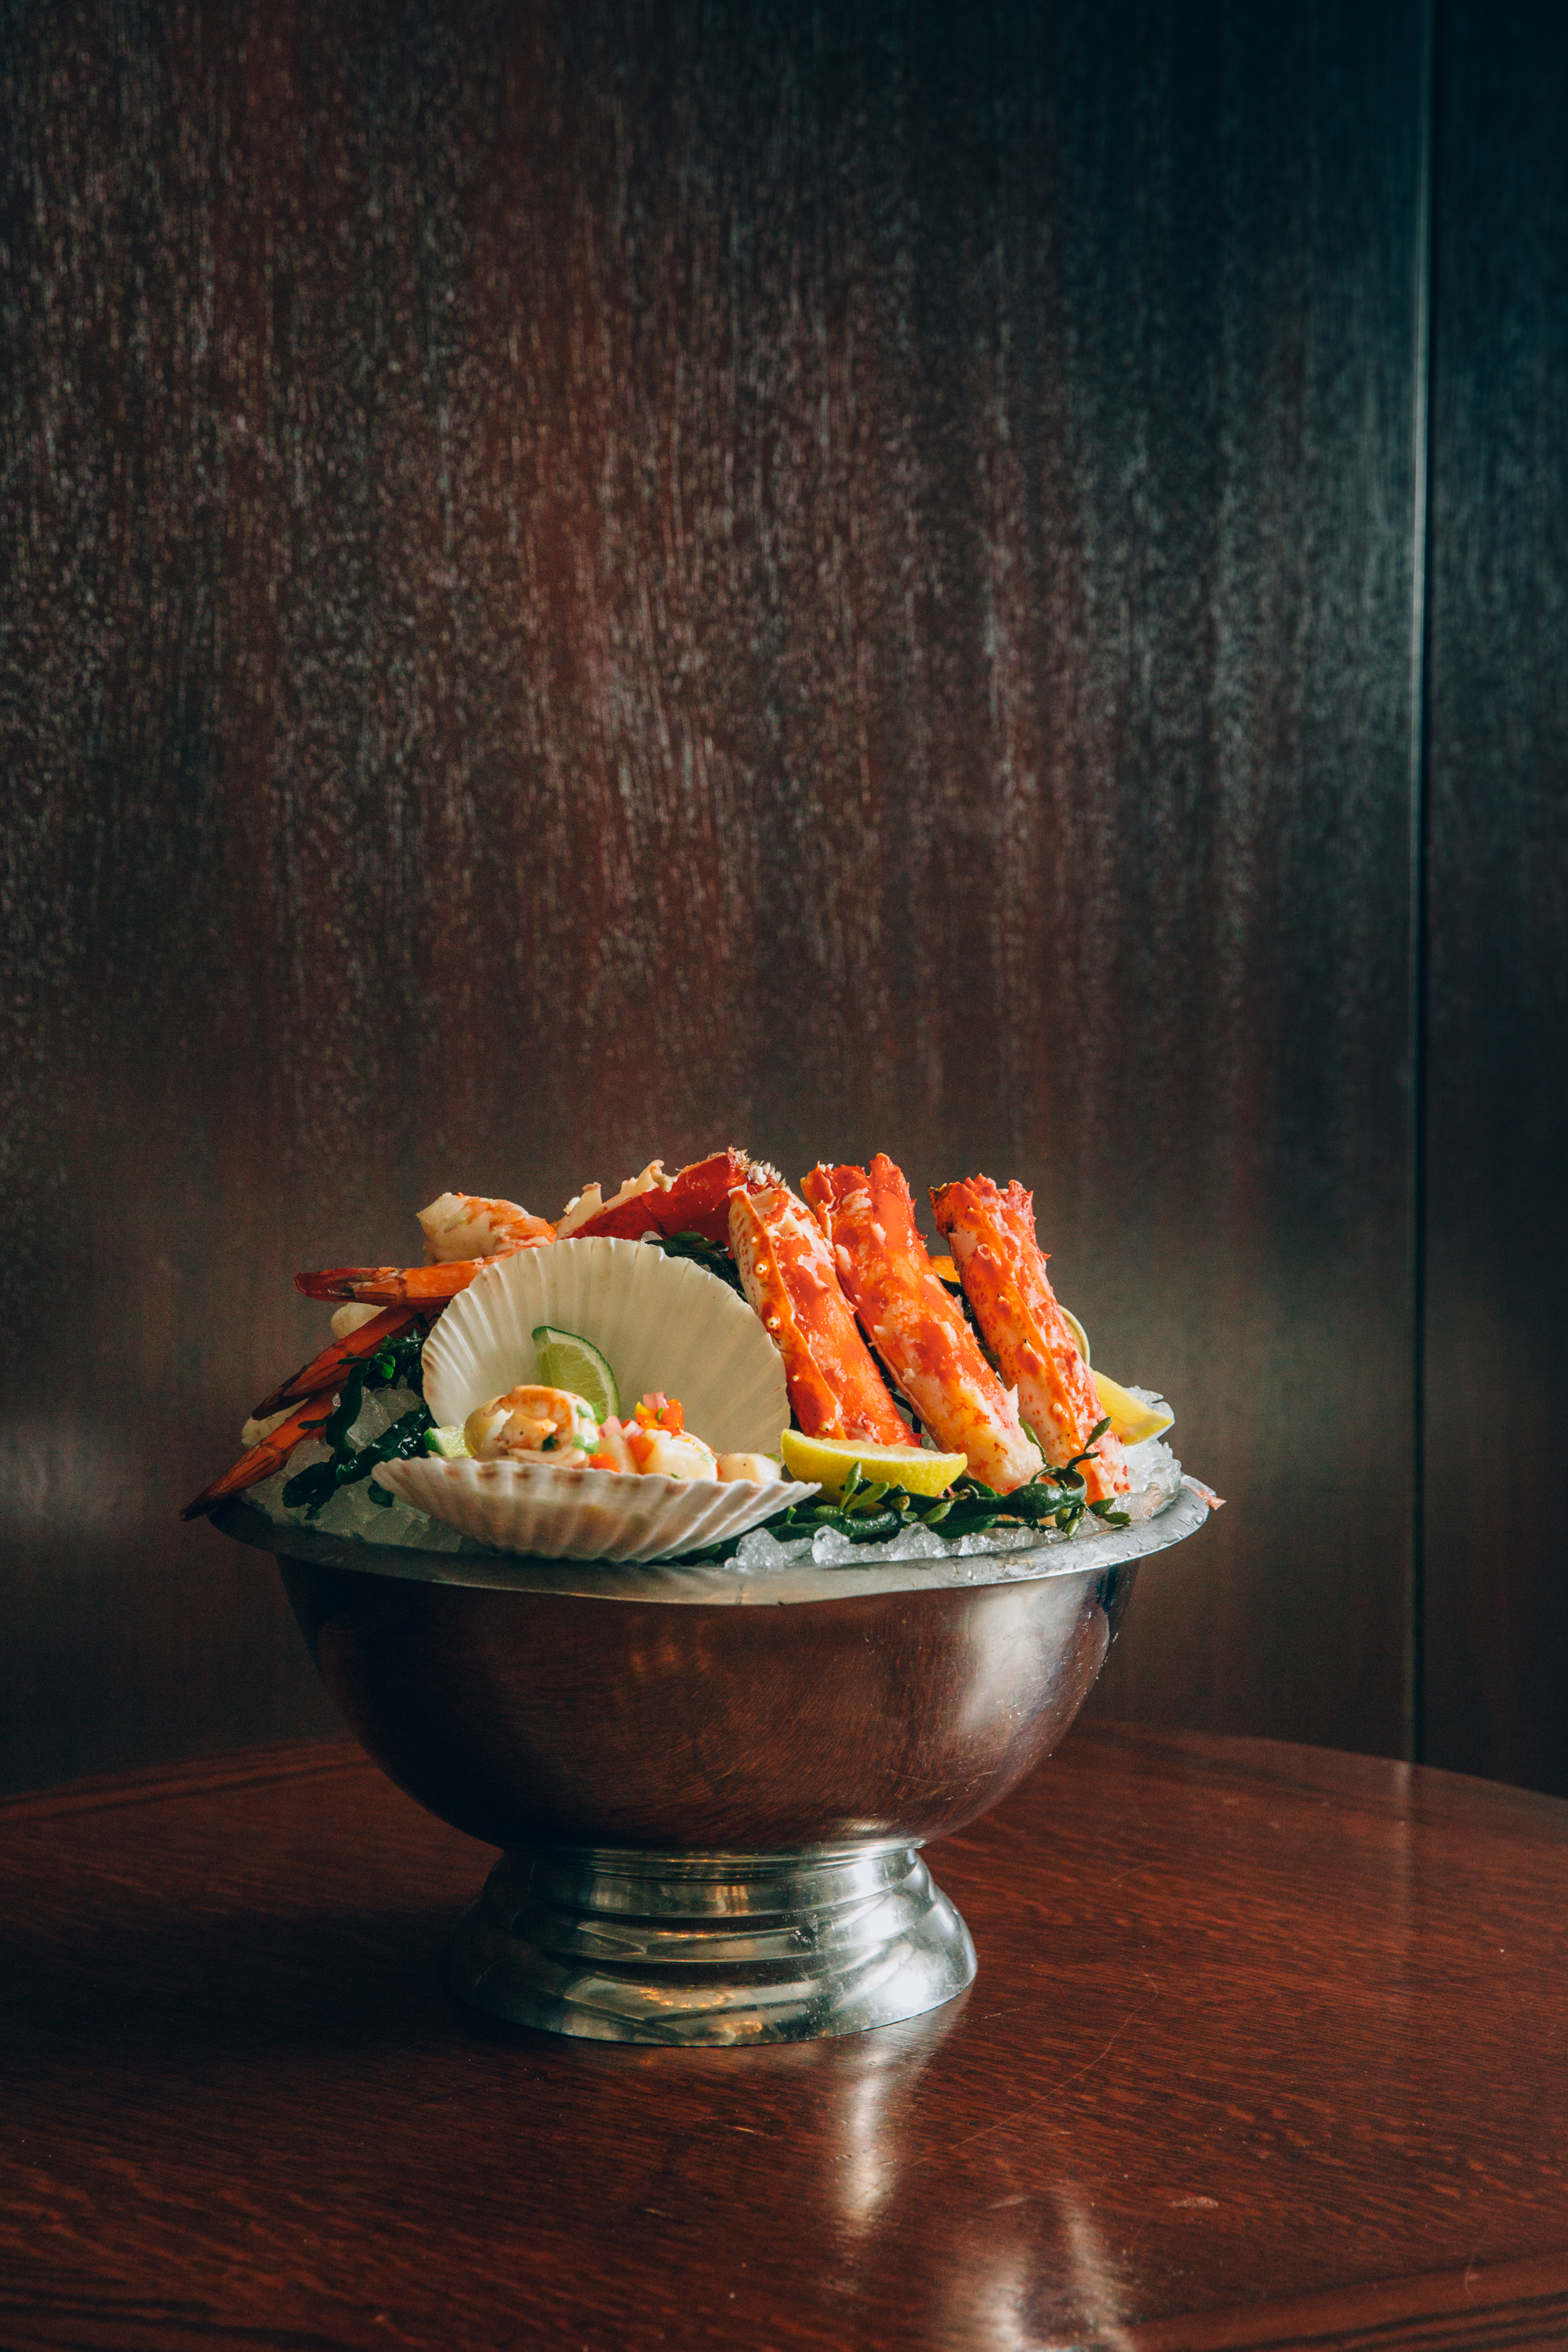 las vegas dining 101 a guide for eating and drinking in sin city the whale at joe s stone crab photo joe s stone crab